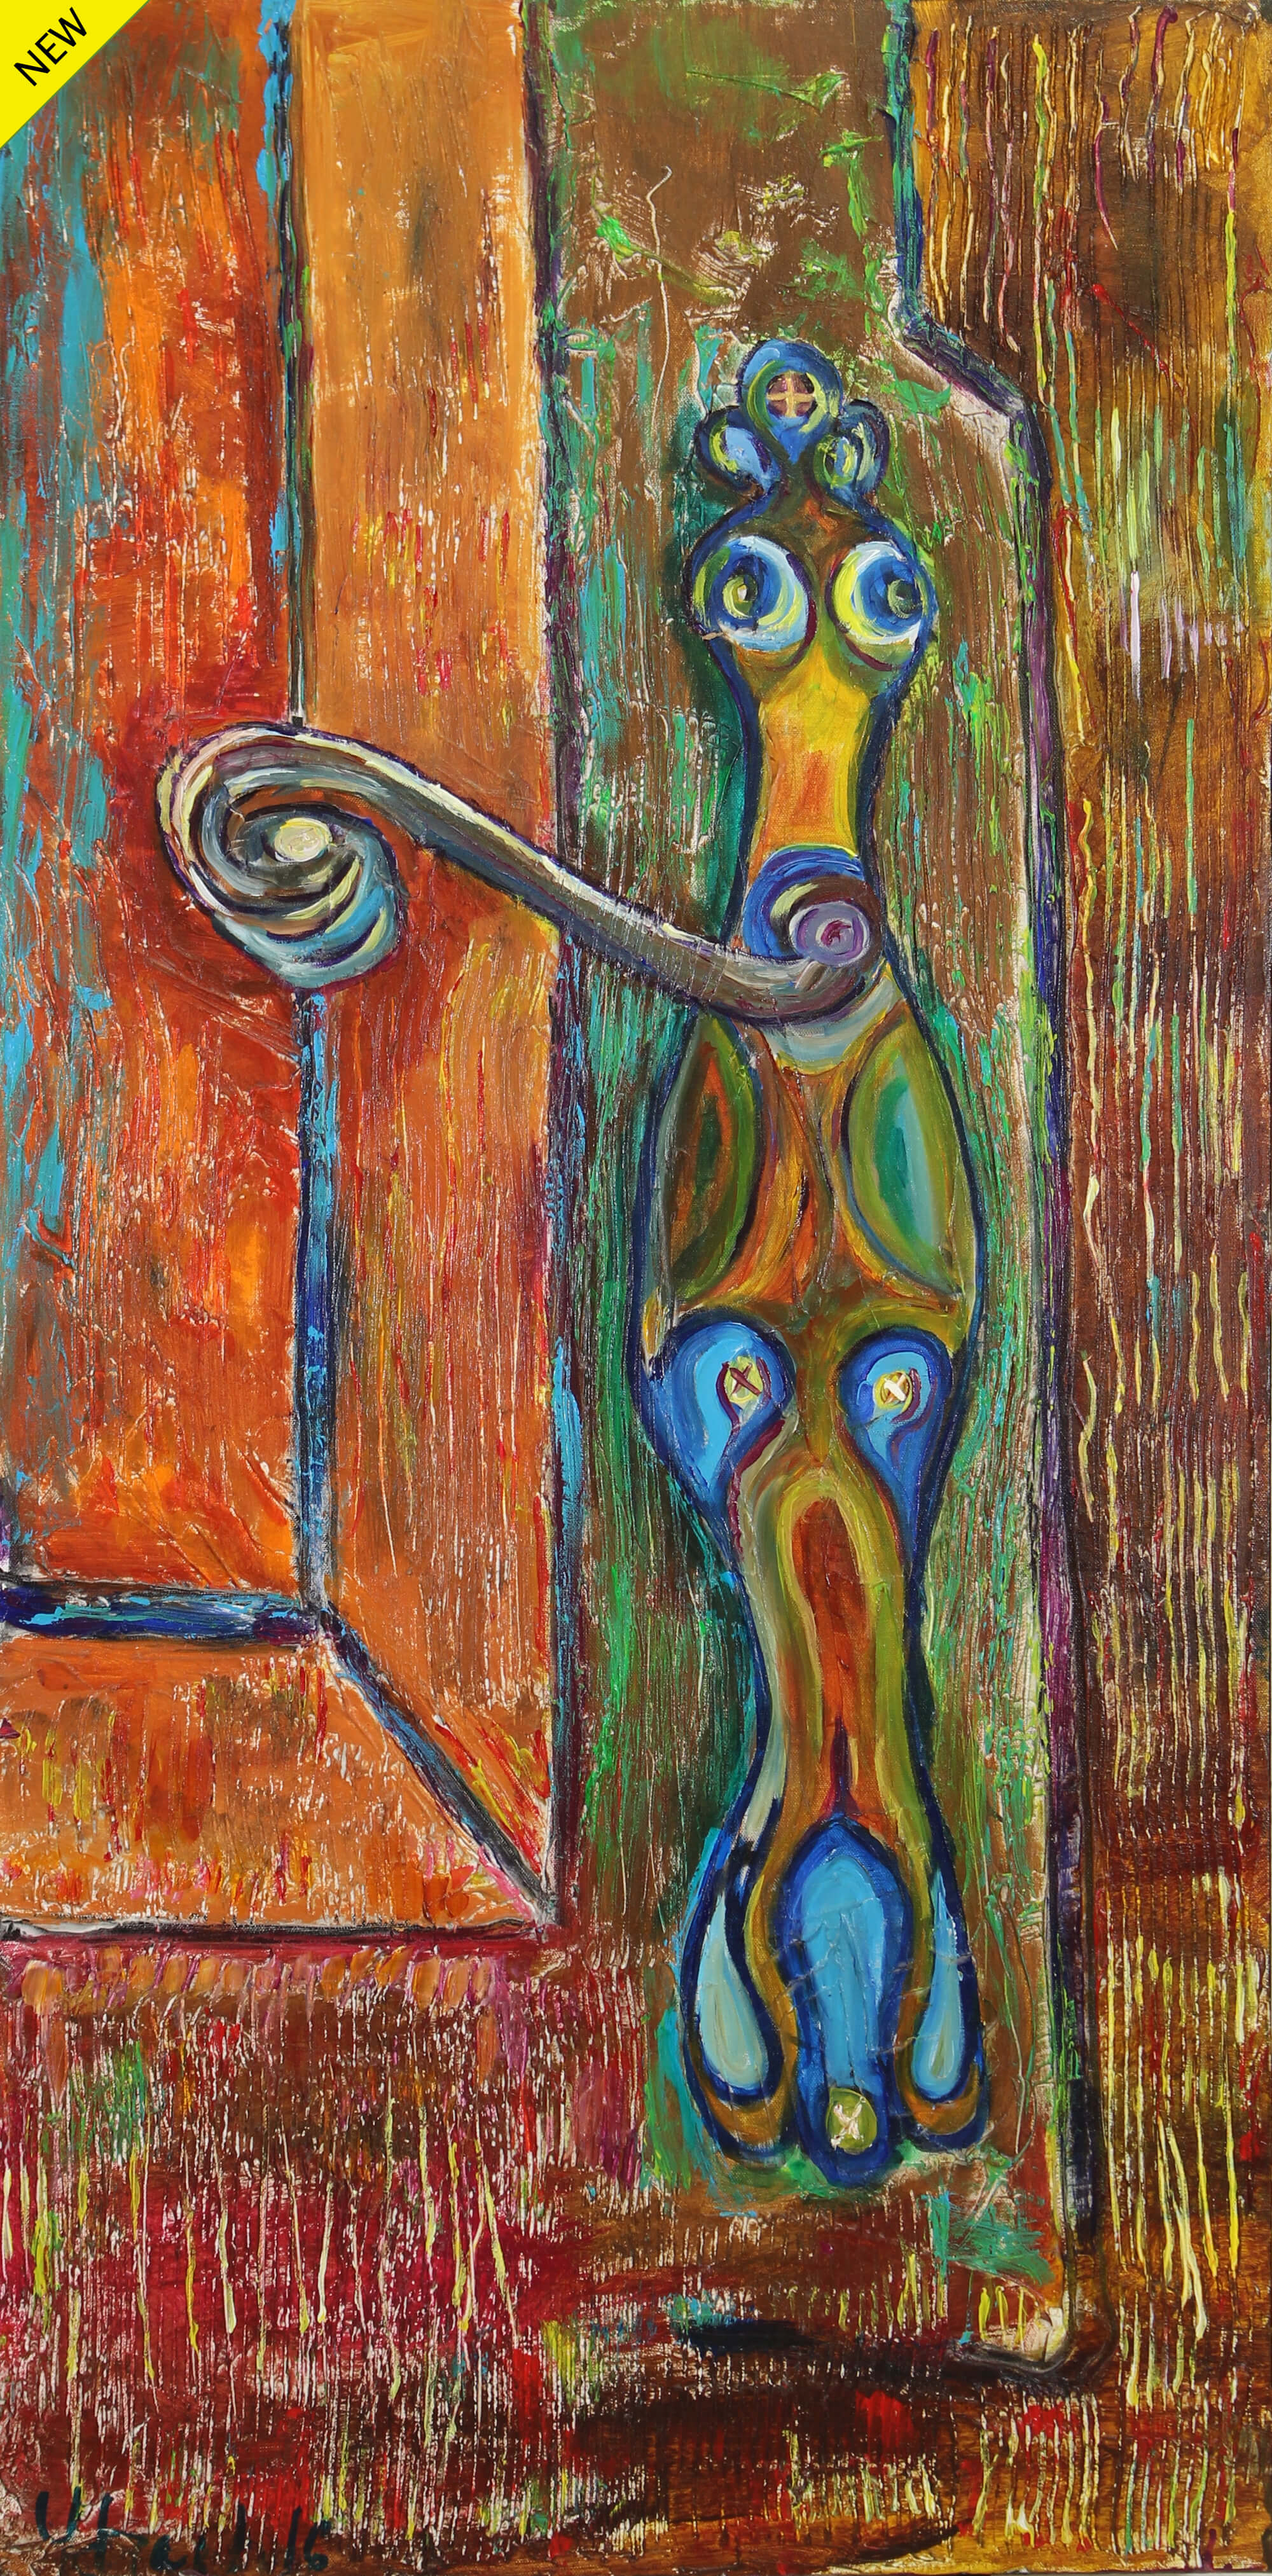 Acrylic painting of a floating, strange, and colorful creature trying to open or close a wood door by Vicente Ydrach.